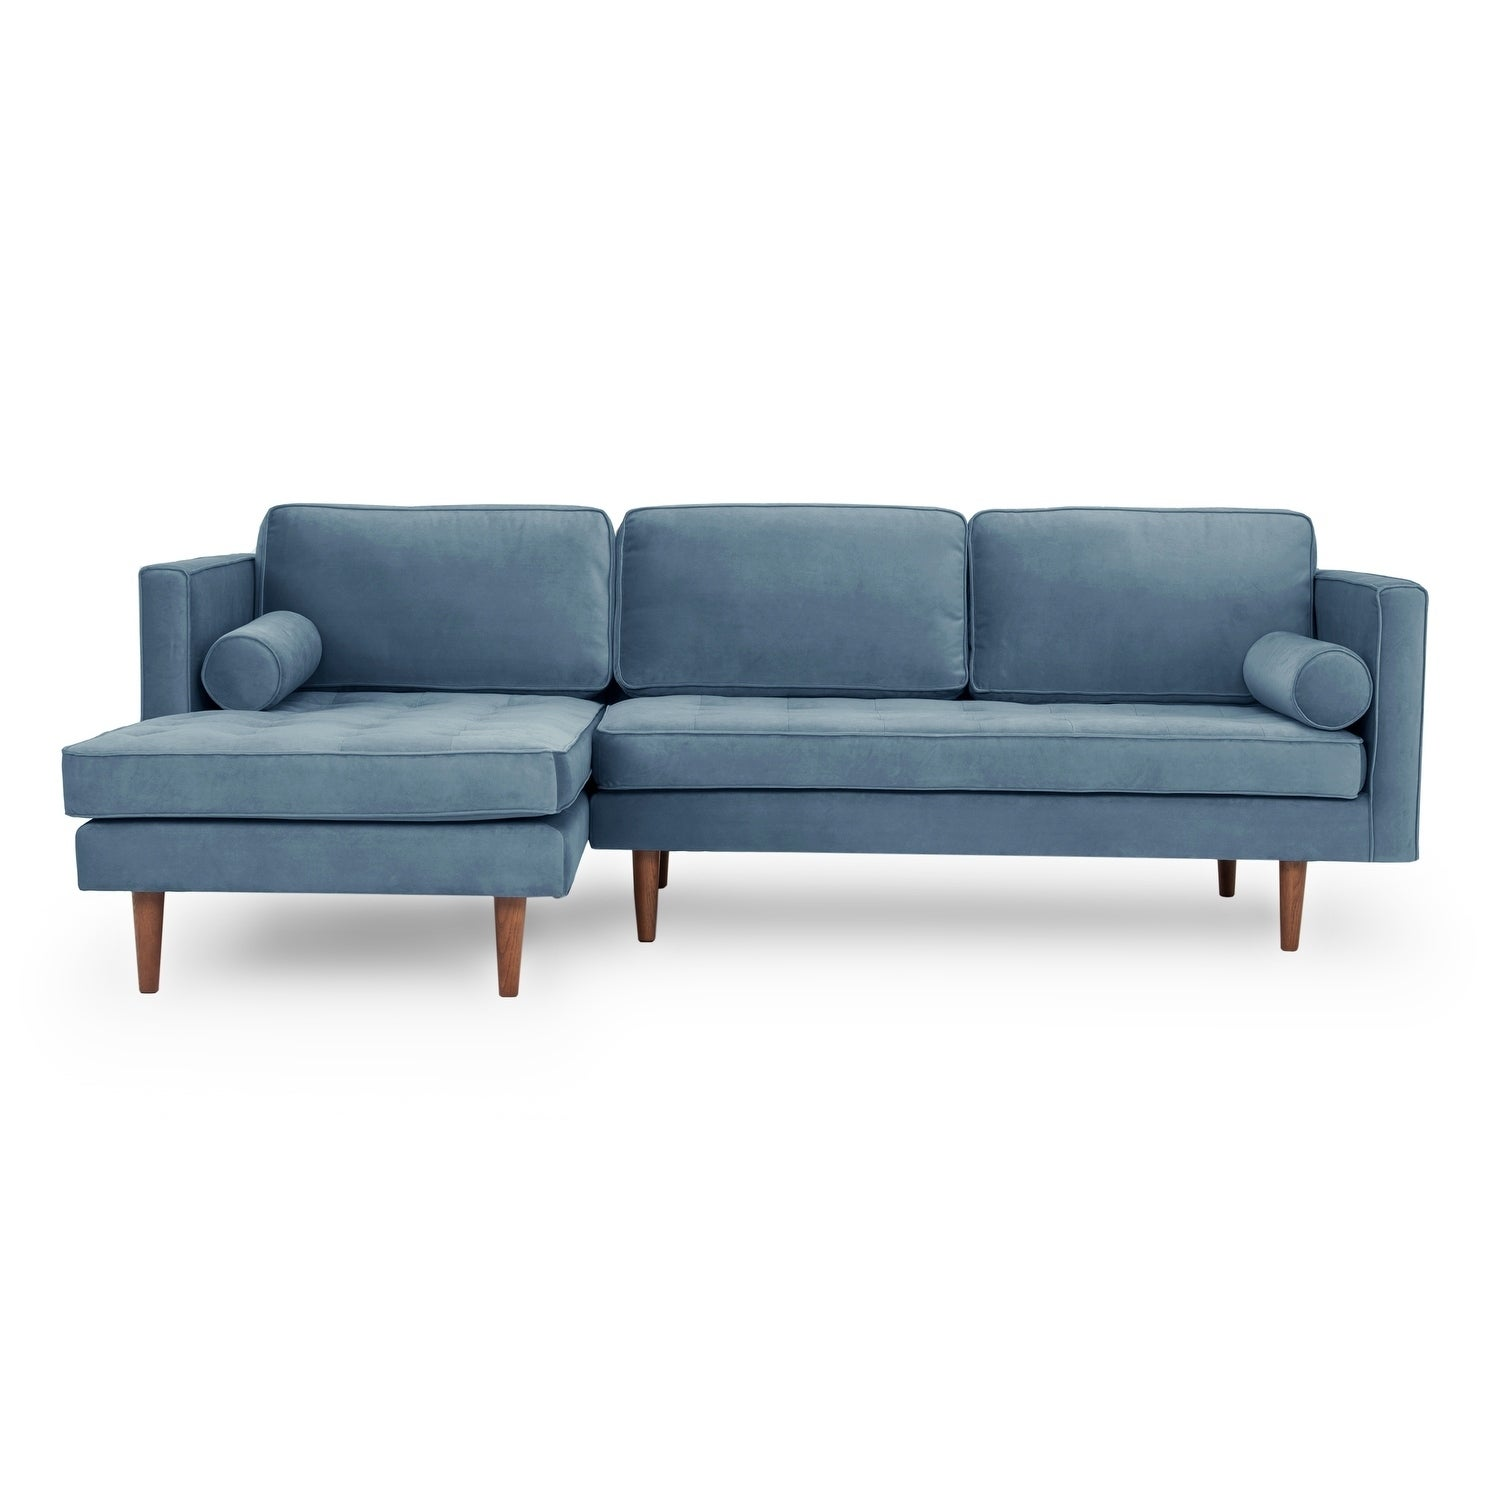 Karl Mid Century Dwell 98 Sofa Sectional Left Width 4 X Depth 61 Height 34 3